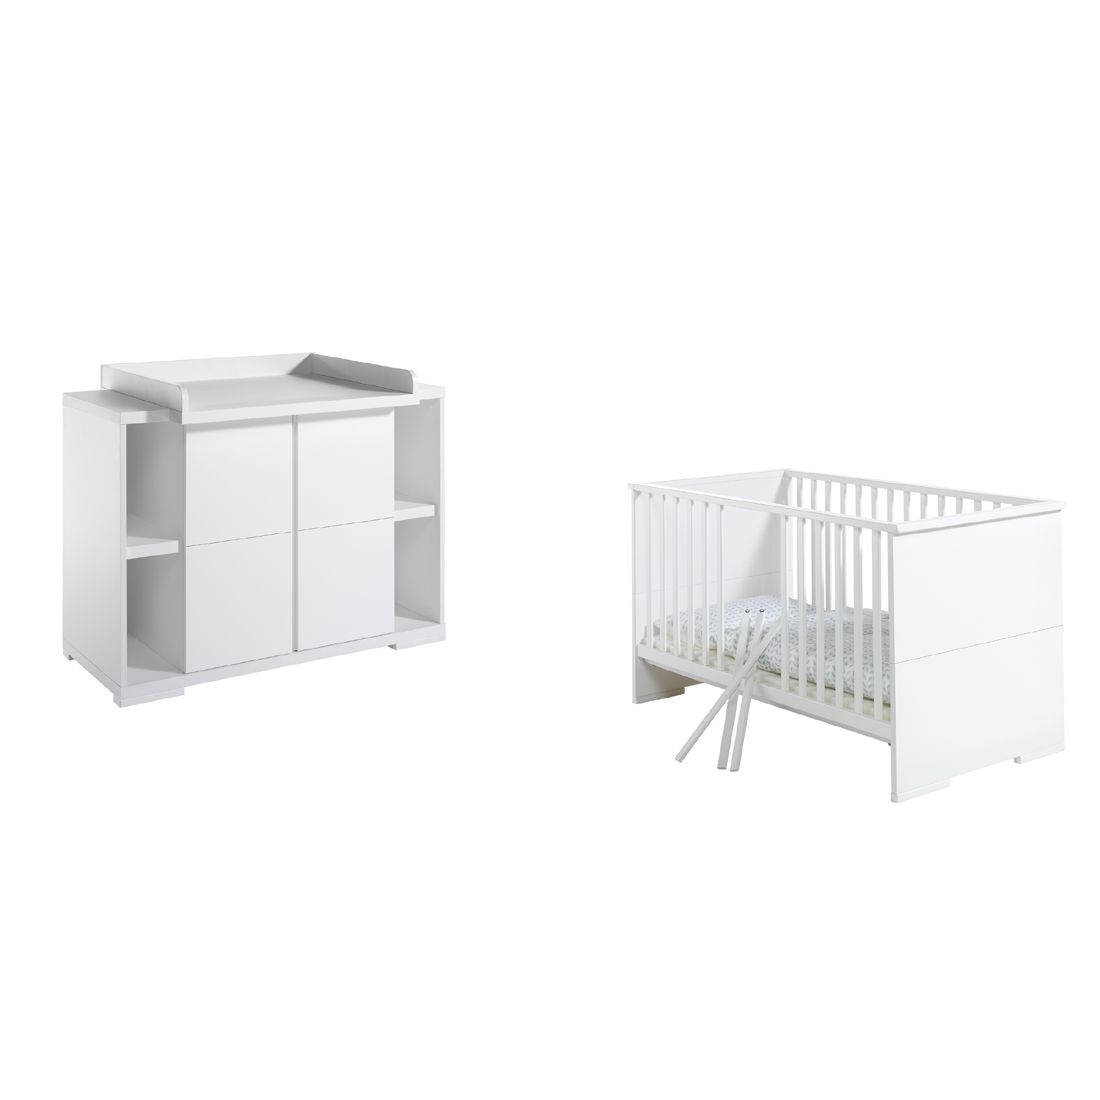 Babyzimmer-Set Maximo- Weiss